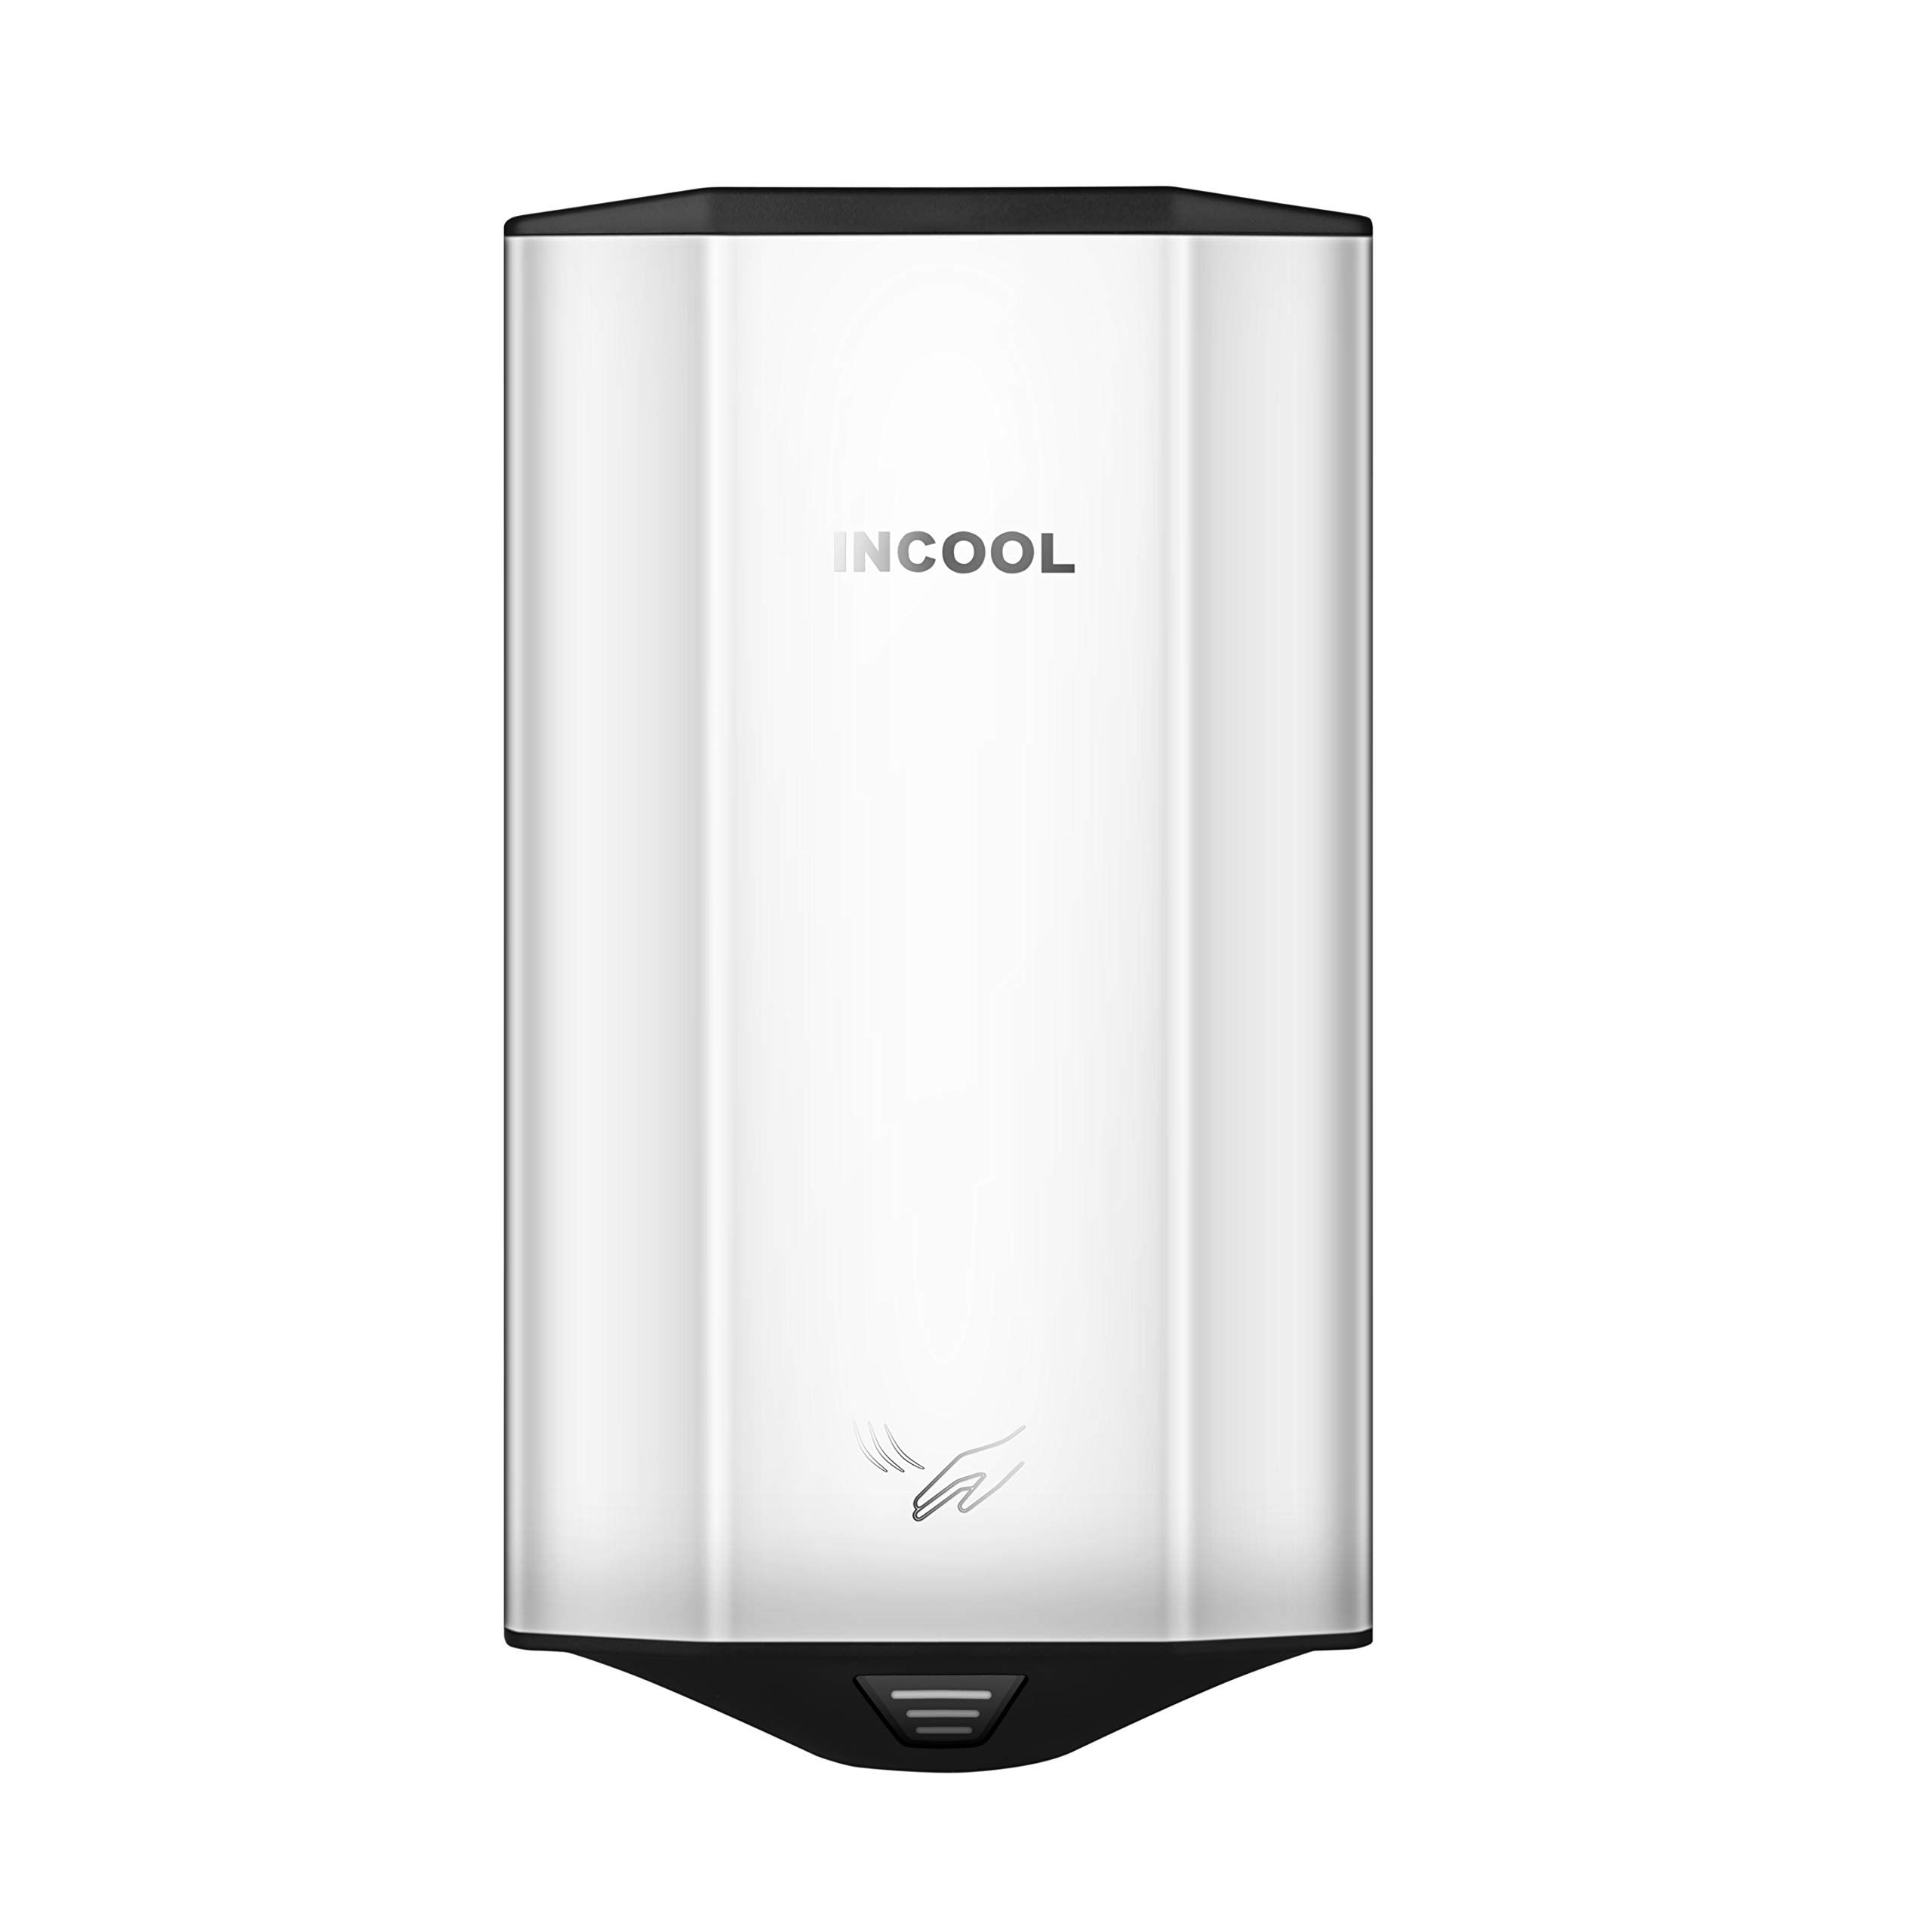 iNcool 607P Automatic HighSpeed Commercial Hand Dryer (Polished) by iNcool